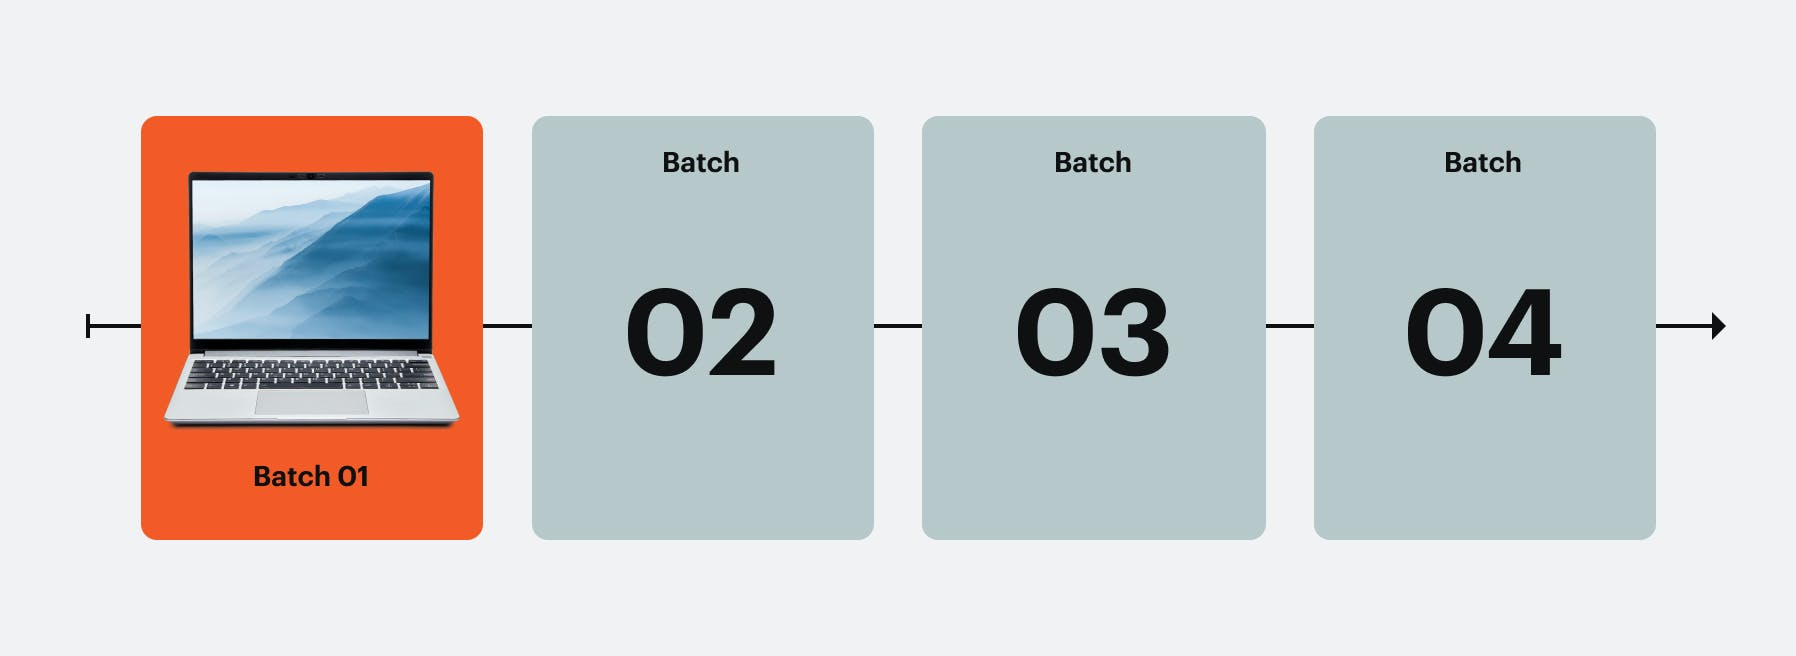 Infographic of batch shipping timeline